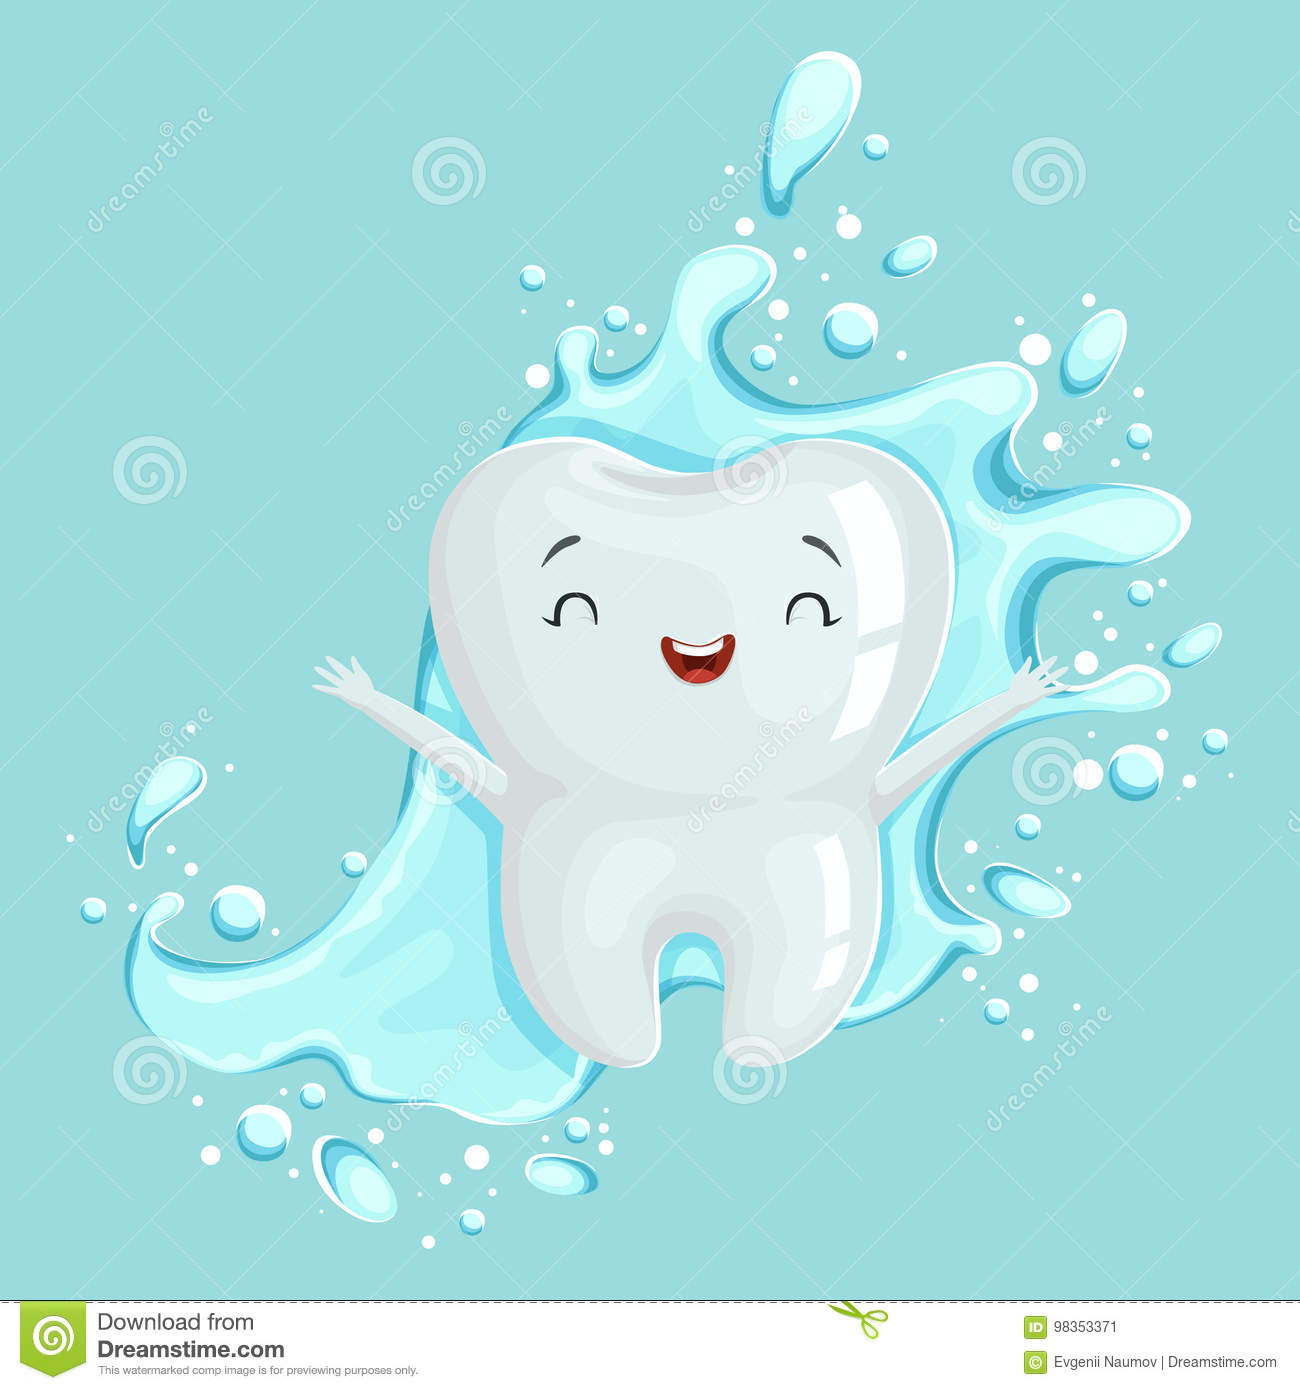 Cute healthy white cartoon tooth character with mouthwash, oral dental hygiene, childrens dentistry concept vector